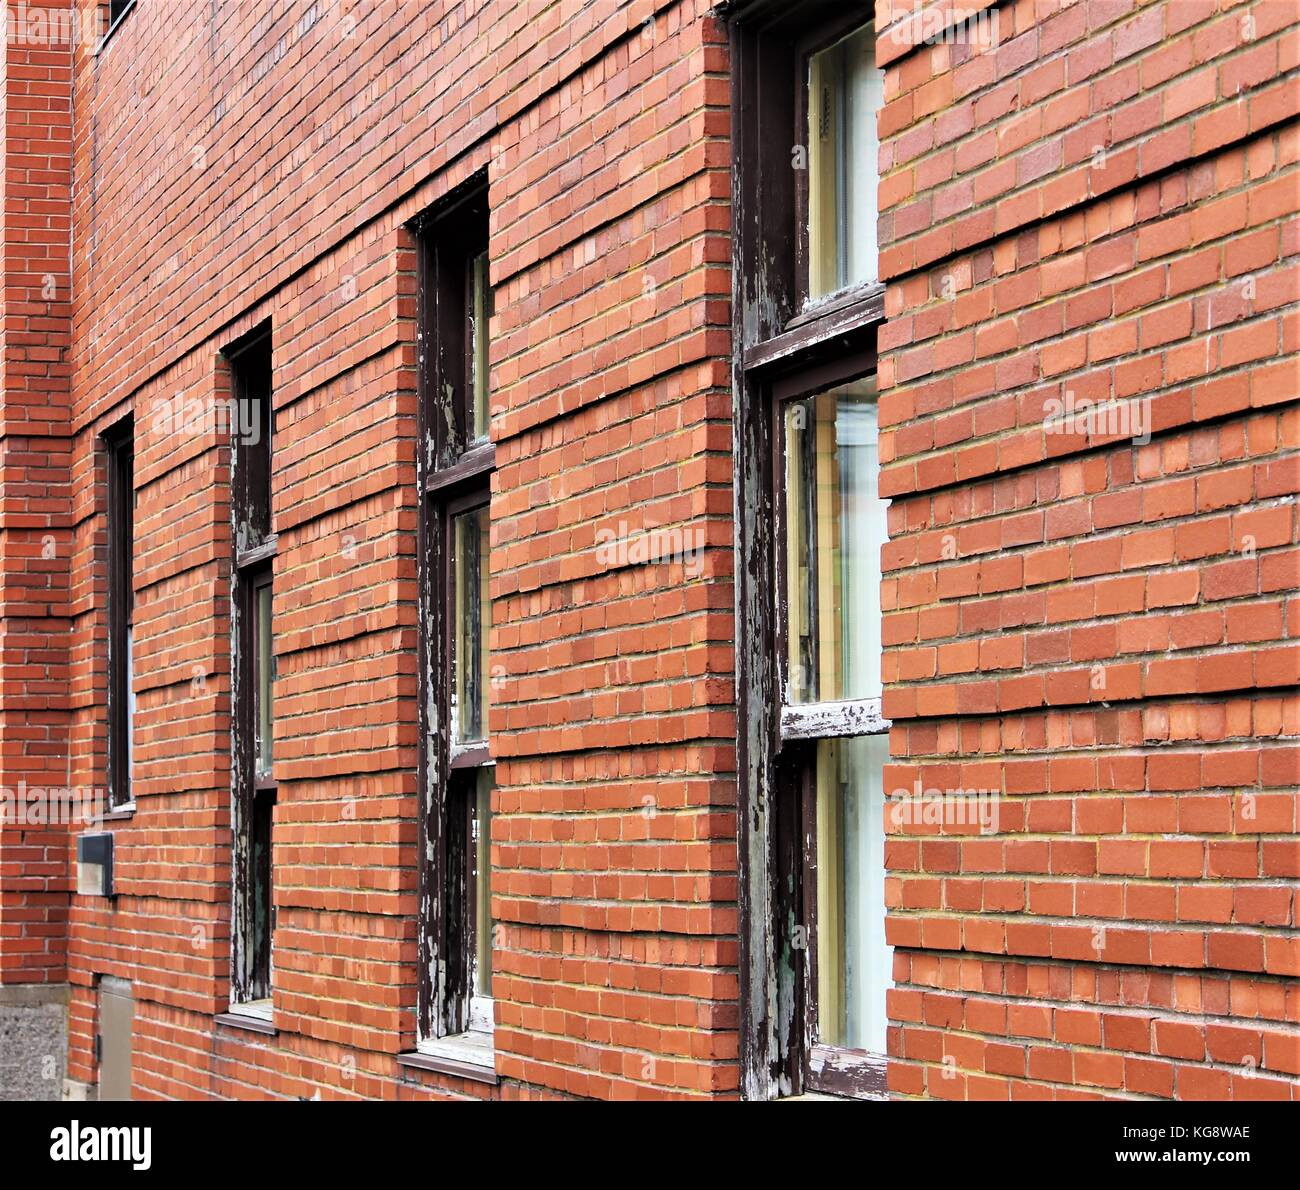 Old fashioned wood framed windows in red brick wall Stock Photo ...